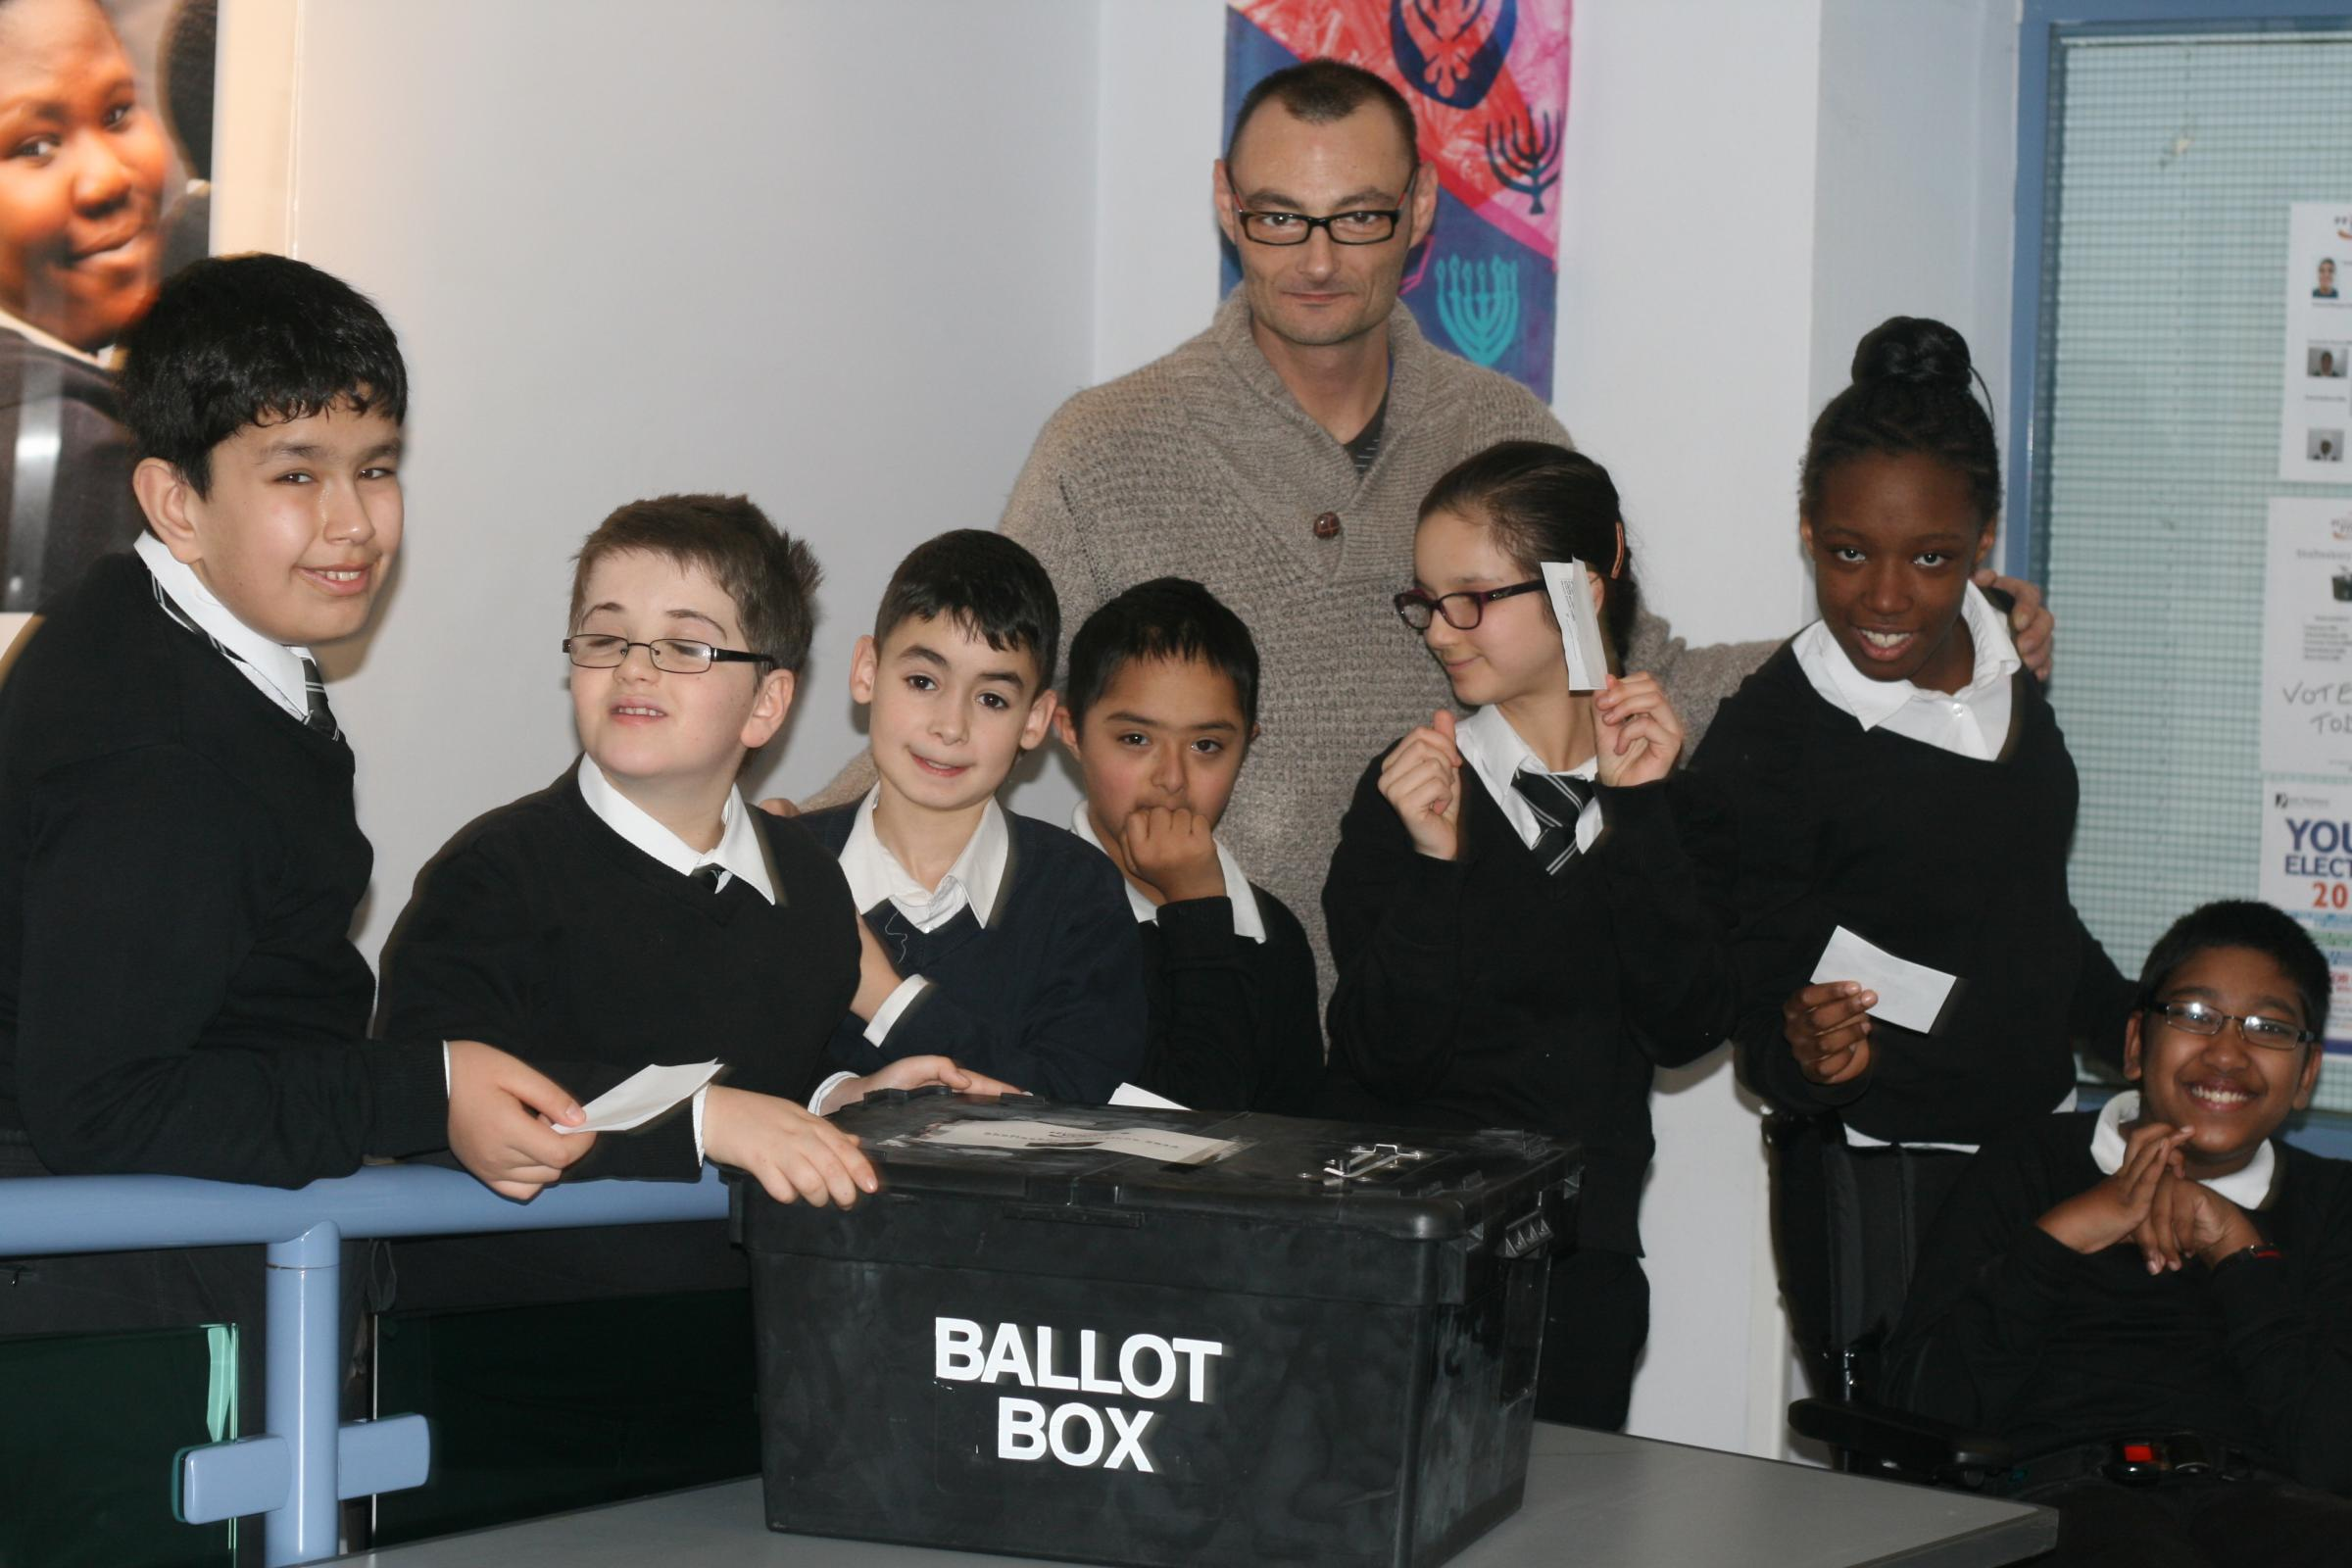 Voting at Shaftesbury High School Elections